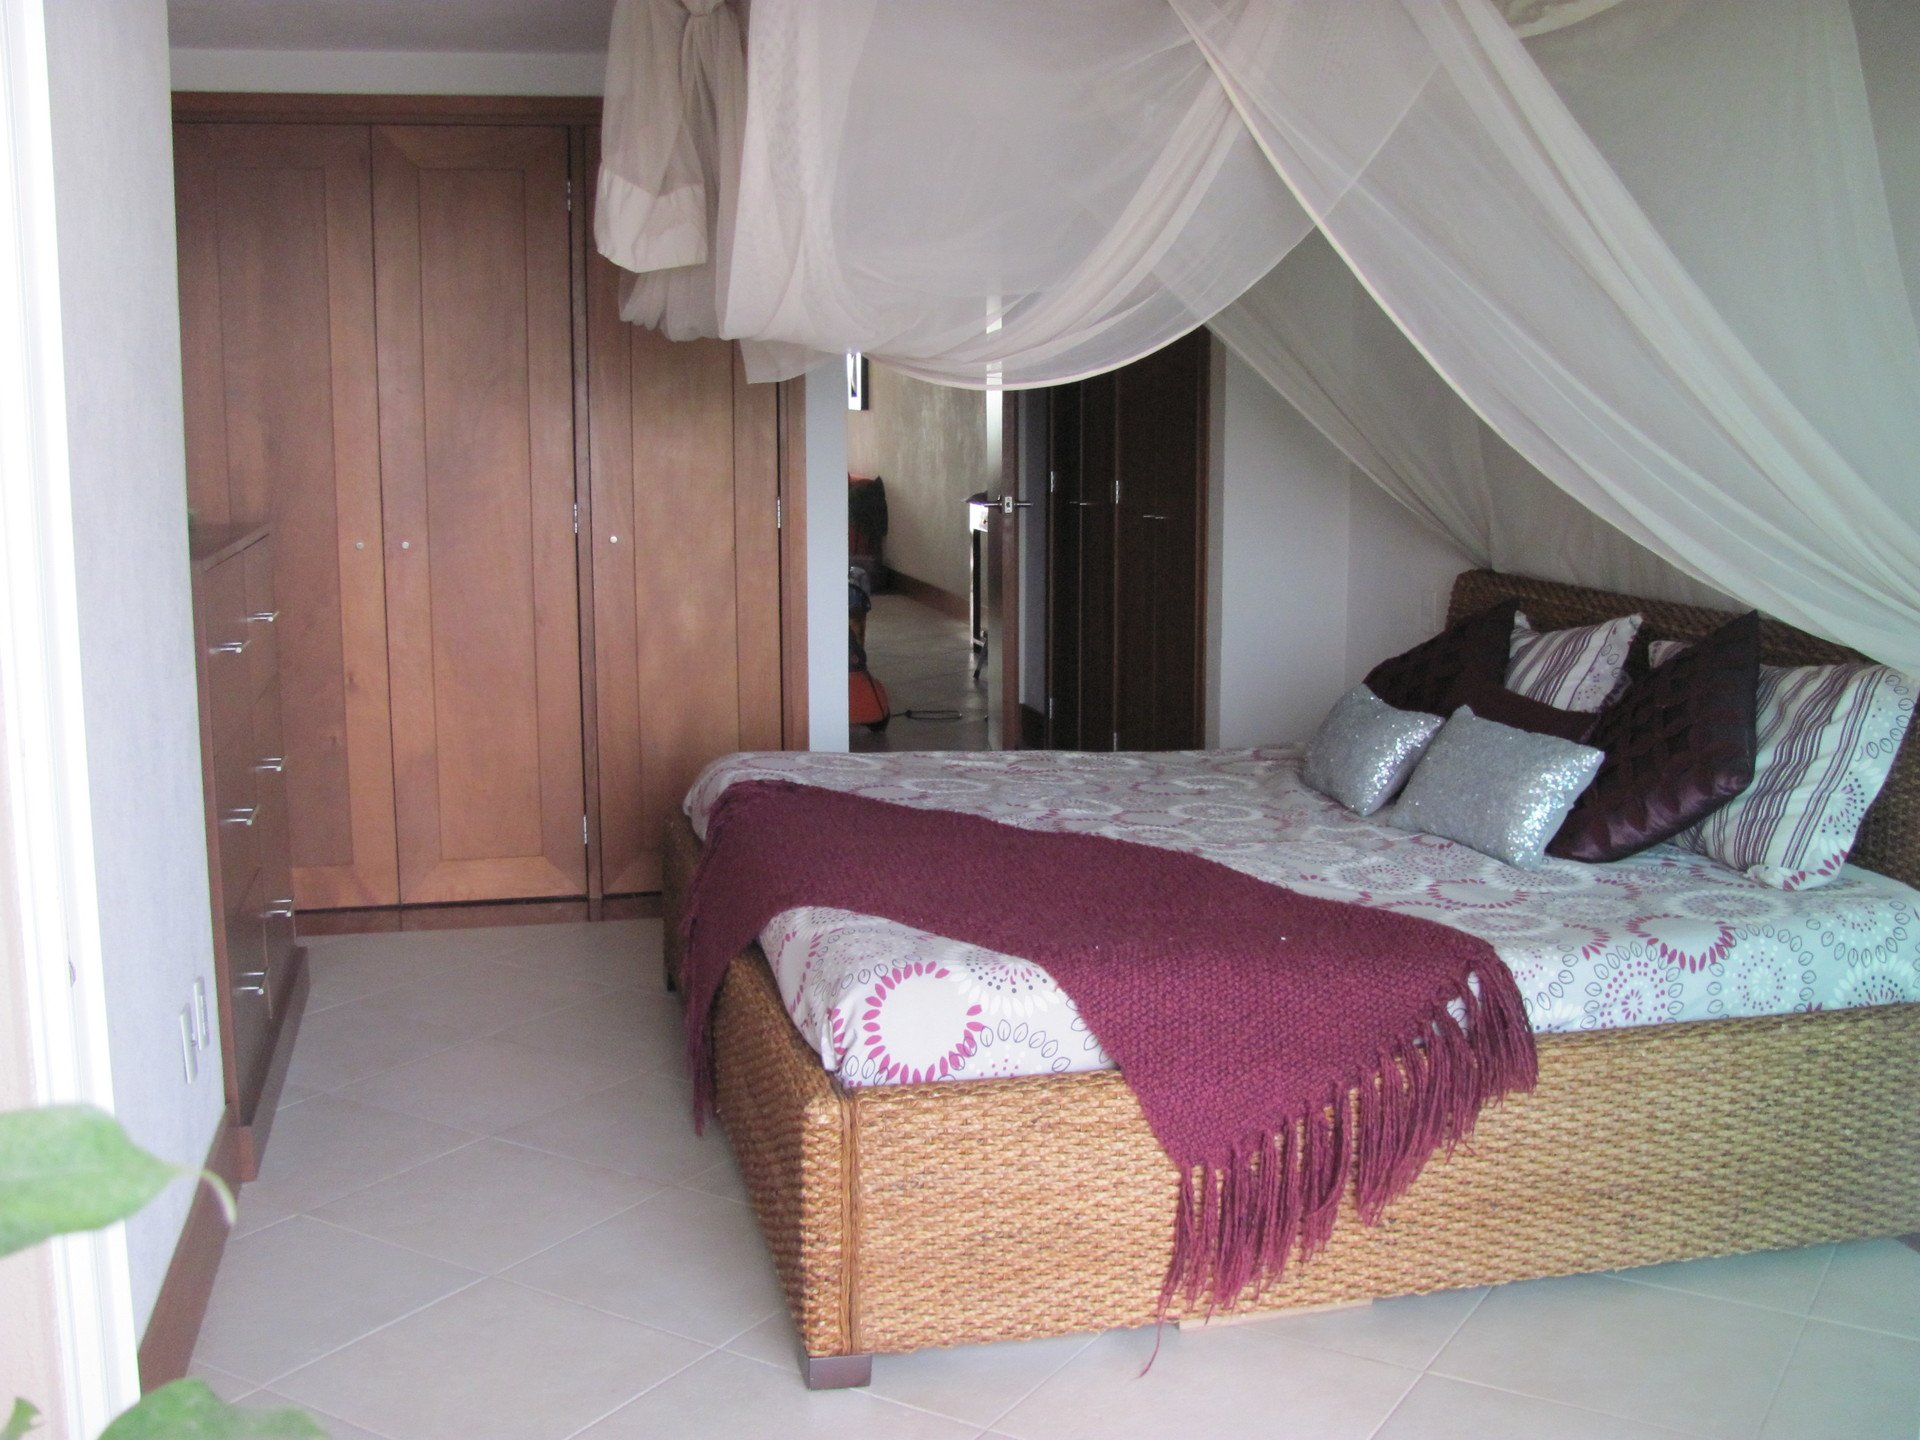 Stylish master bedroom of this 1 bedroom vacation rental condo at Grand Venetian Puerto Vallarta